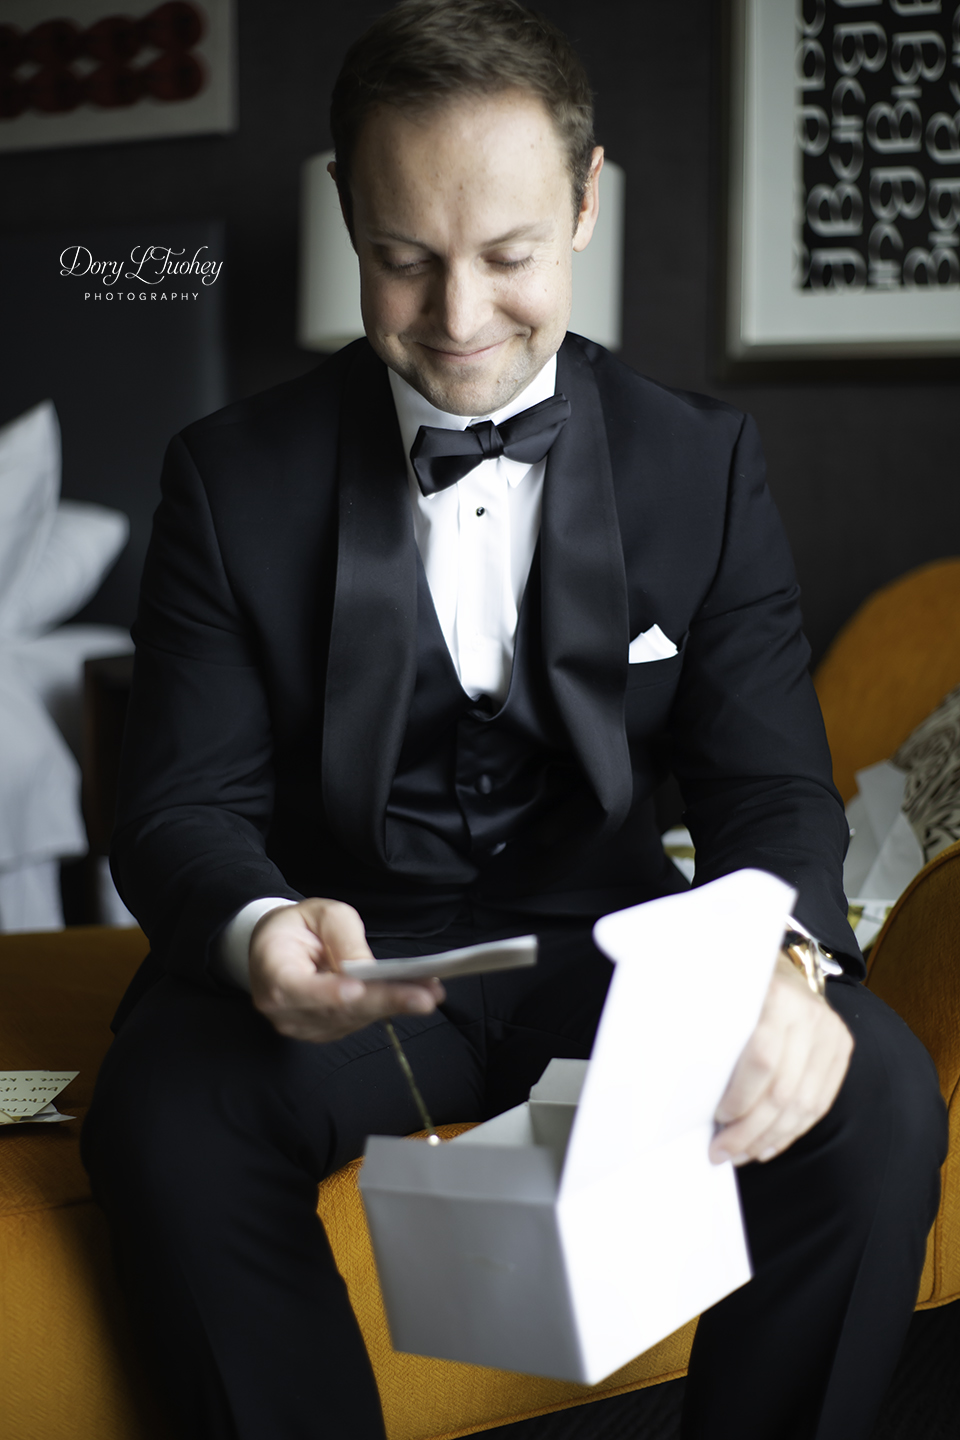 Wedding_chicago_bride_groom_photographer_wisconsin_gren_bay_wit_loyola_06.jpg